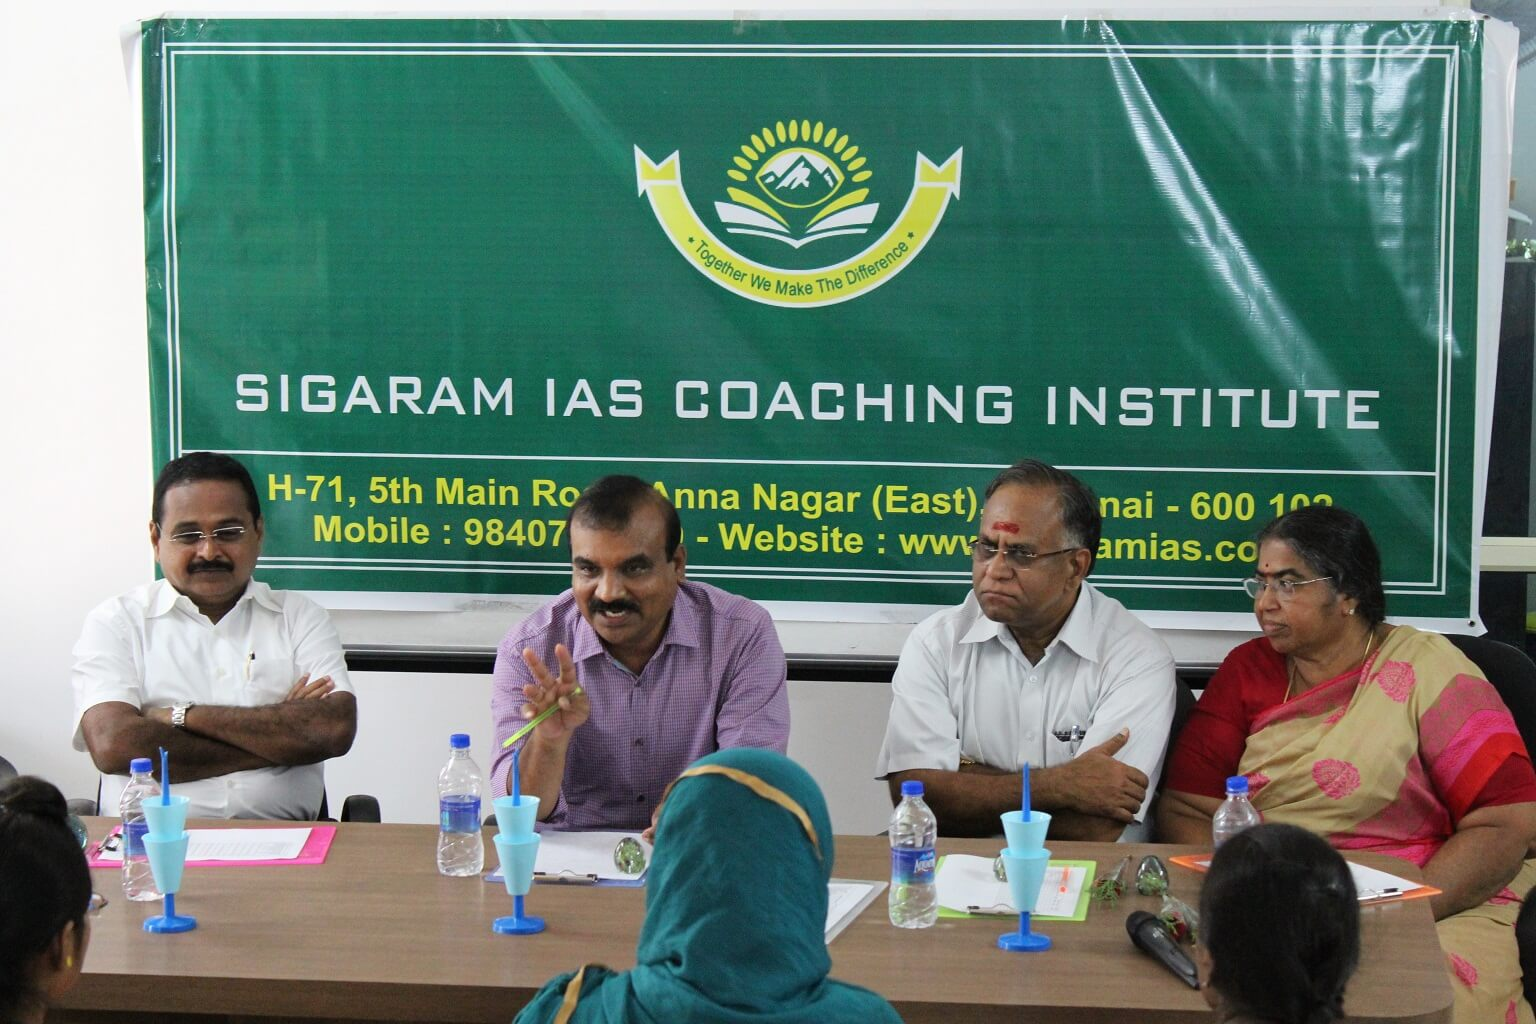 Mr.Ramesh Prabha - Sigaram is an I.A.S. Coaching Institute